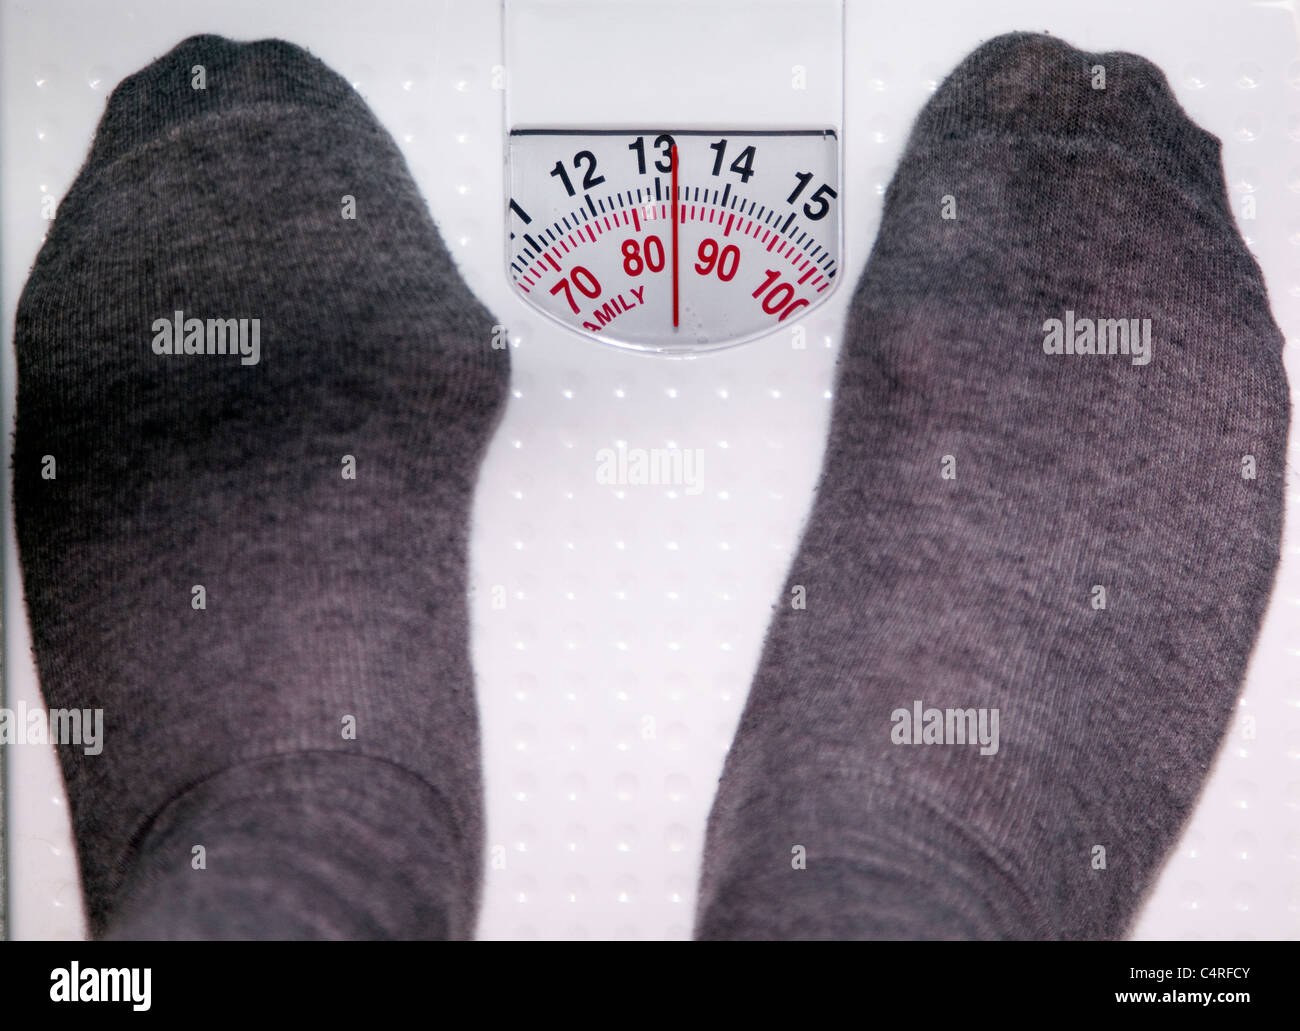 Bathroom Scales, London: Obese Middle Aged Male Weighs In At 85 Kilos:left  Foot Has Bunion Swelling